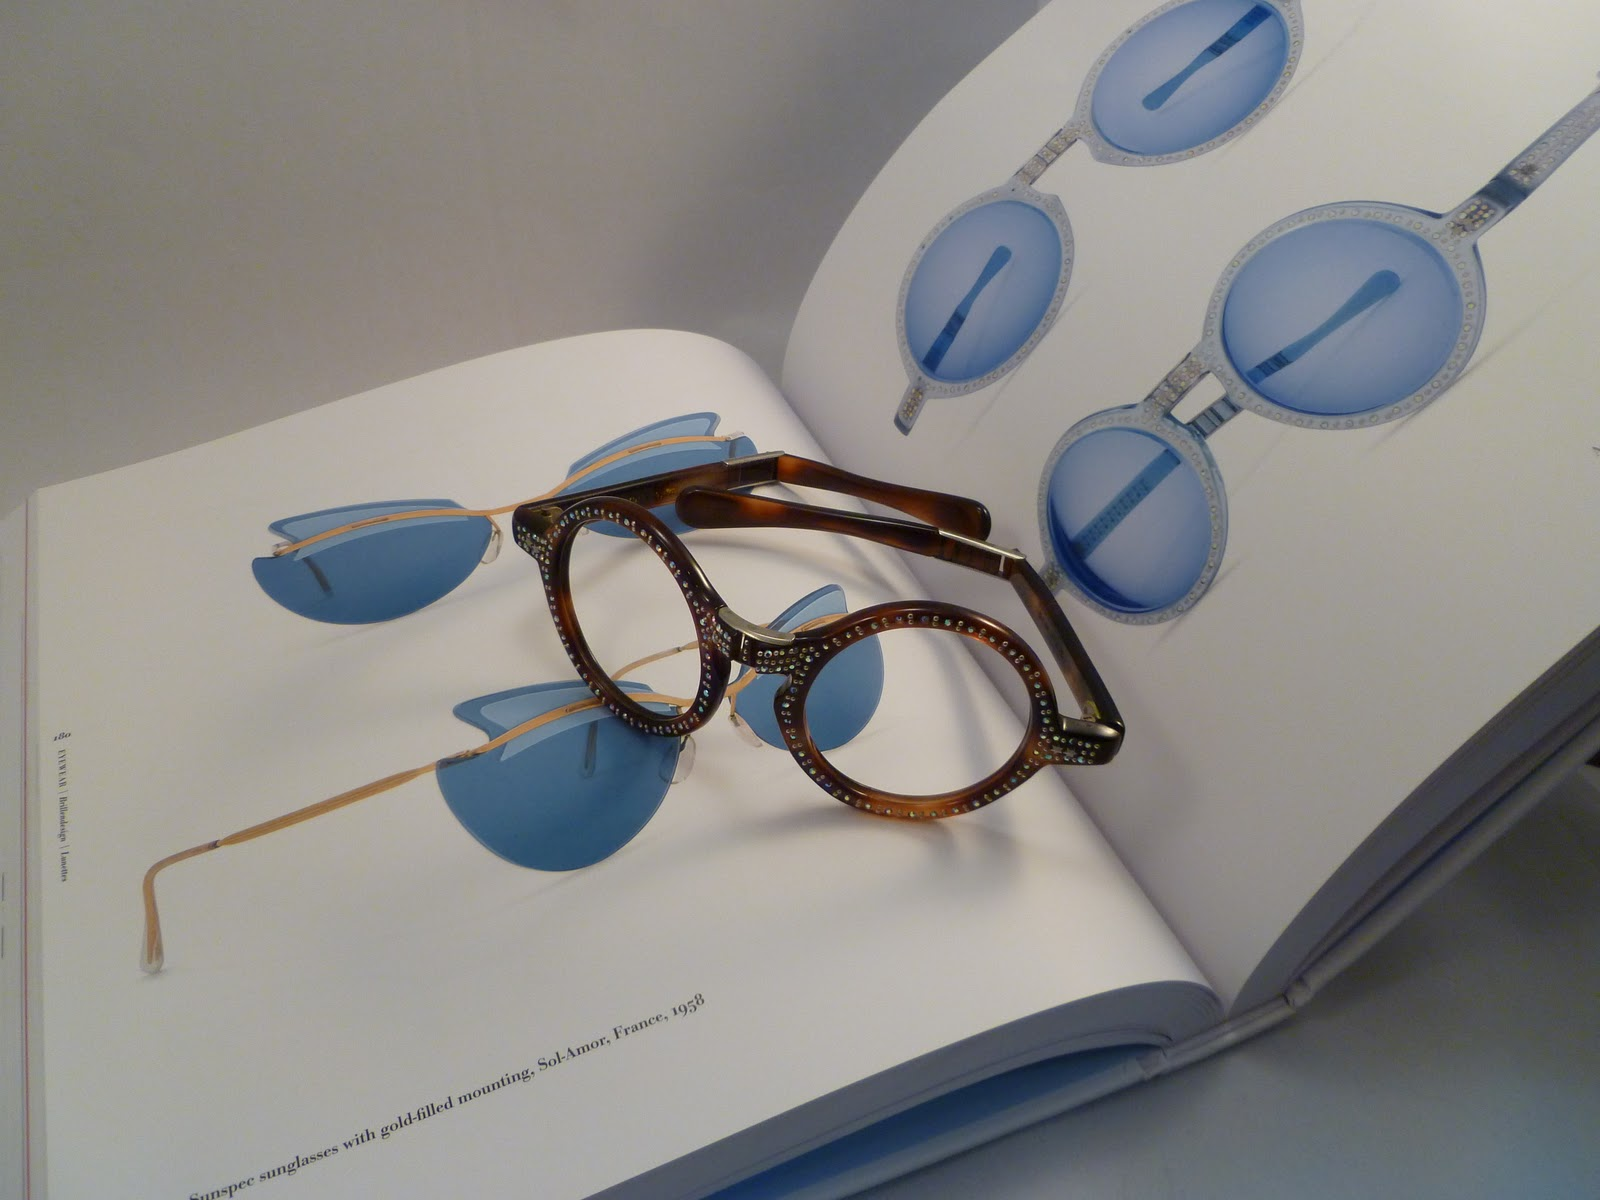 debdce1d8d0e The book is filled with the most exquisite examples of the evolution of  eyewear. The pieces chosen by